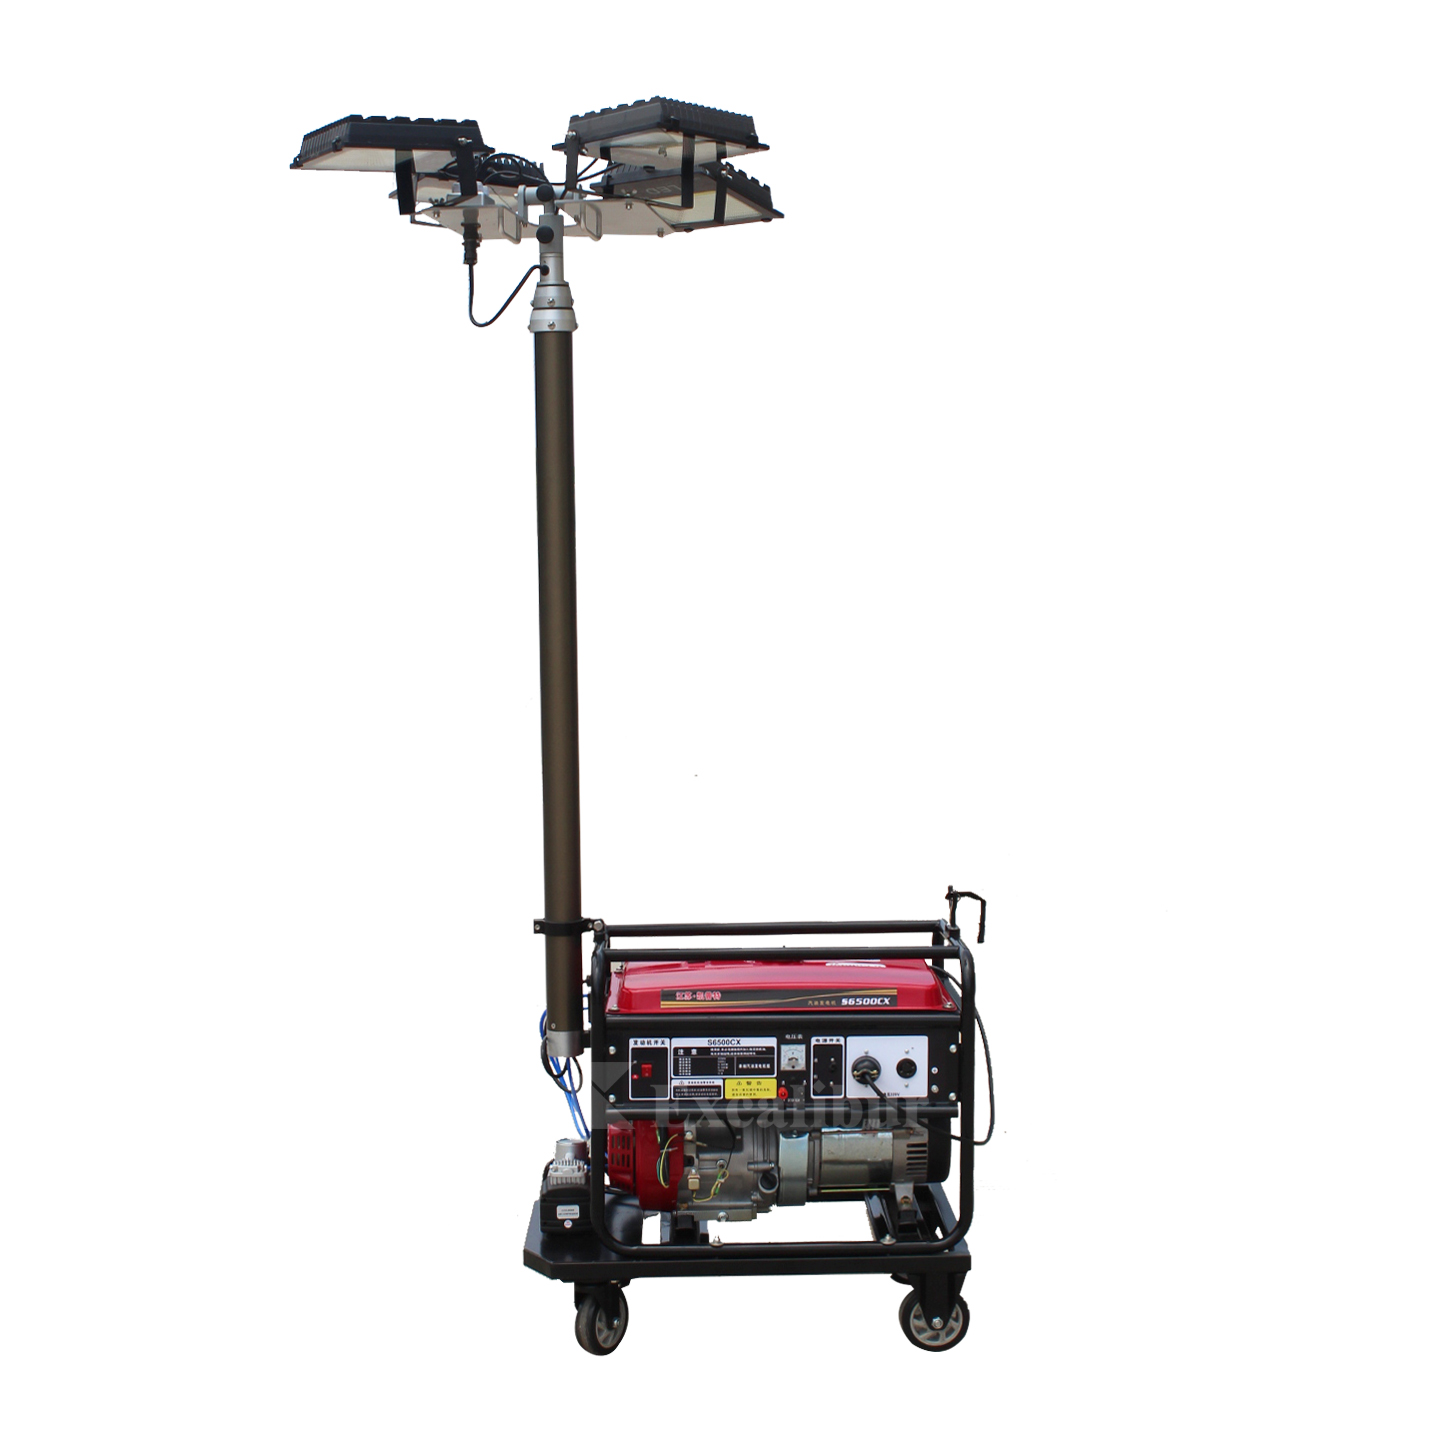 Excalibur High Quality Mobile Lighting Tower With Mast Lifting Height 9 Meter